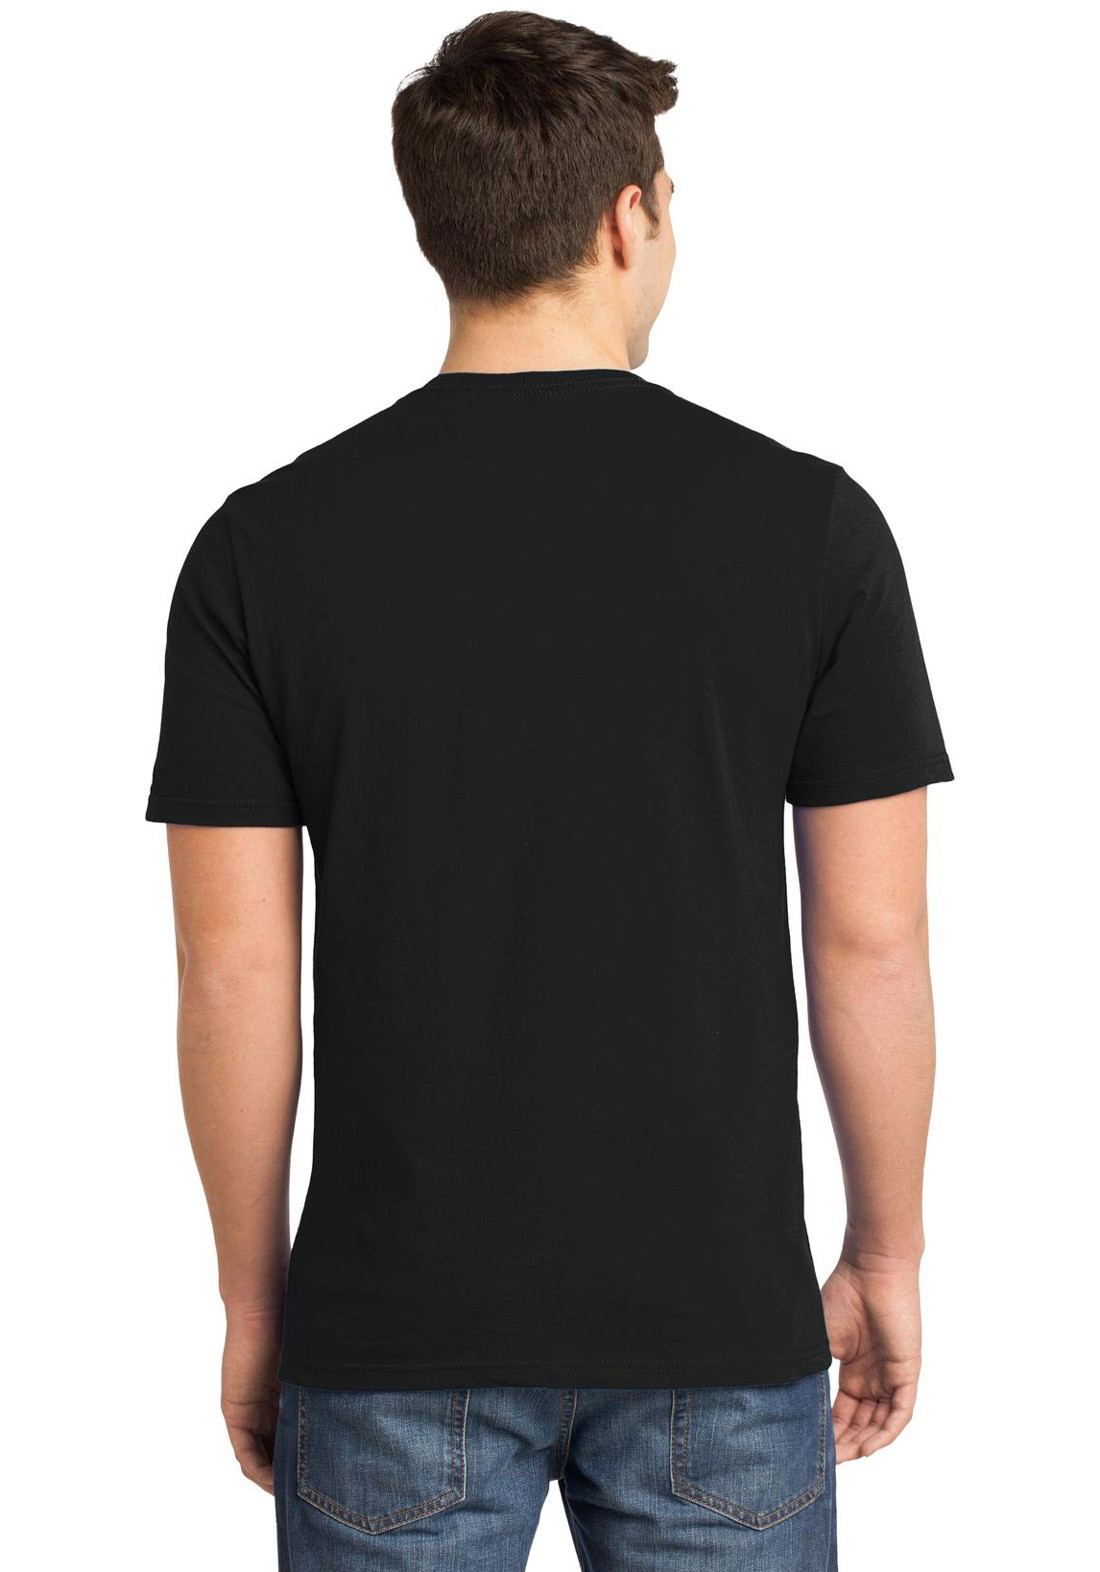 Camiseta Masculina Think Outside The Box ER_065